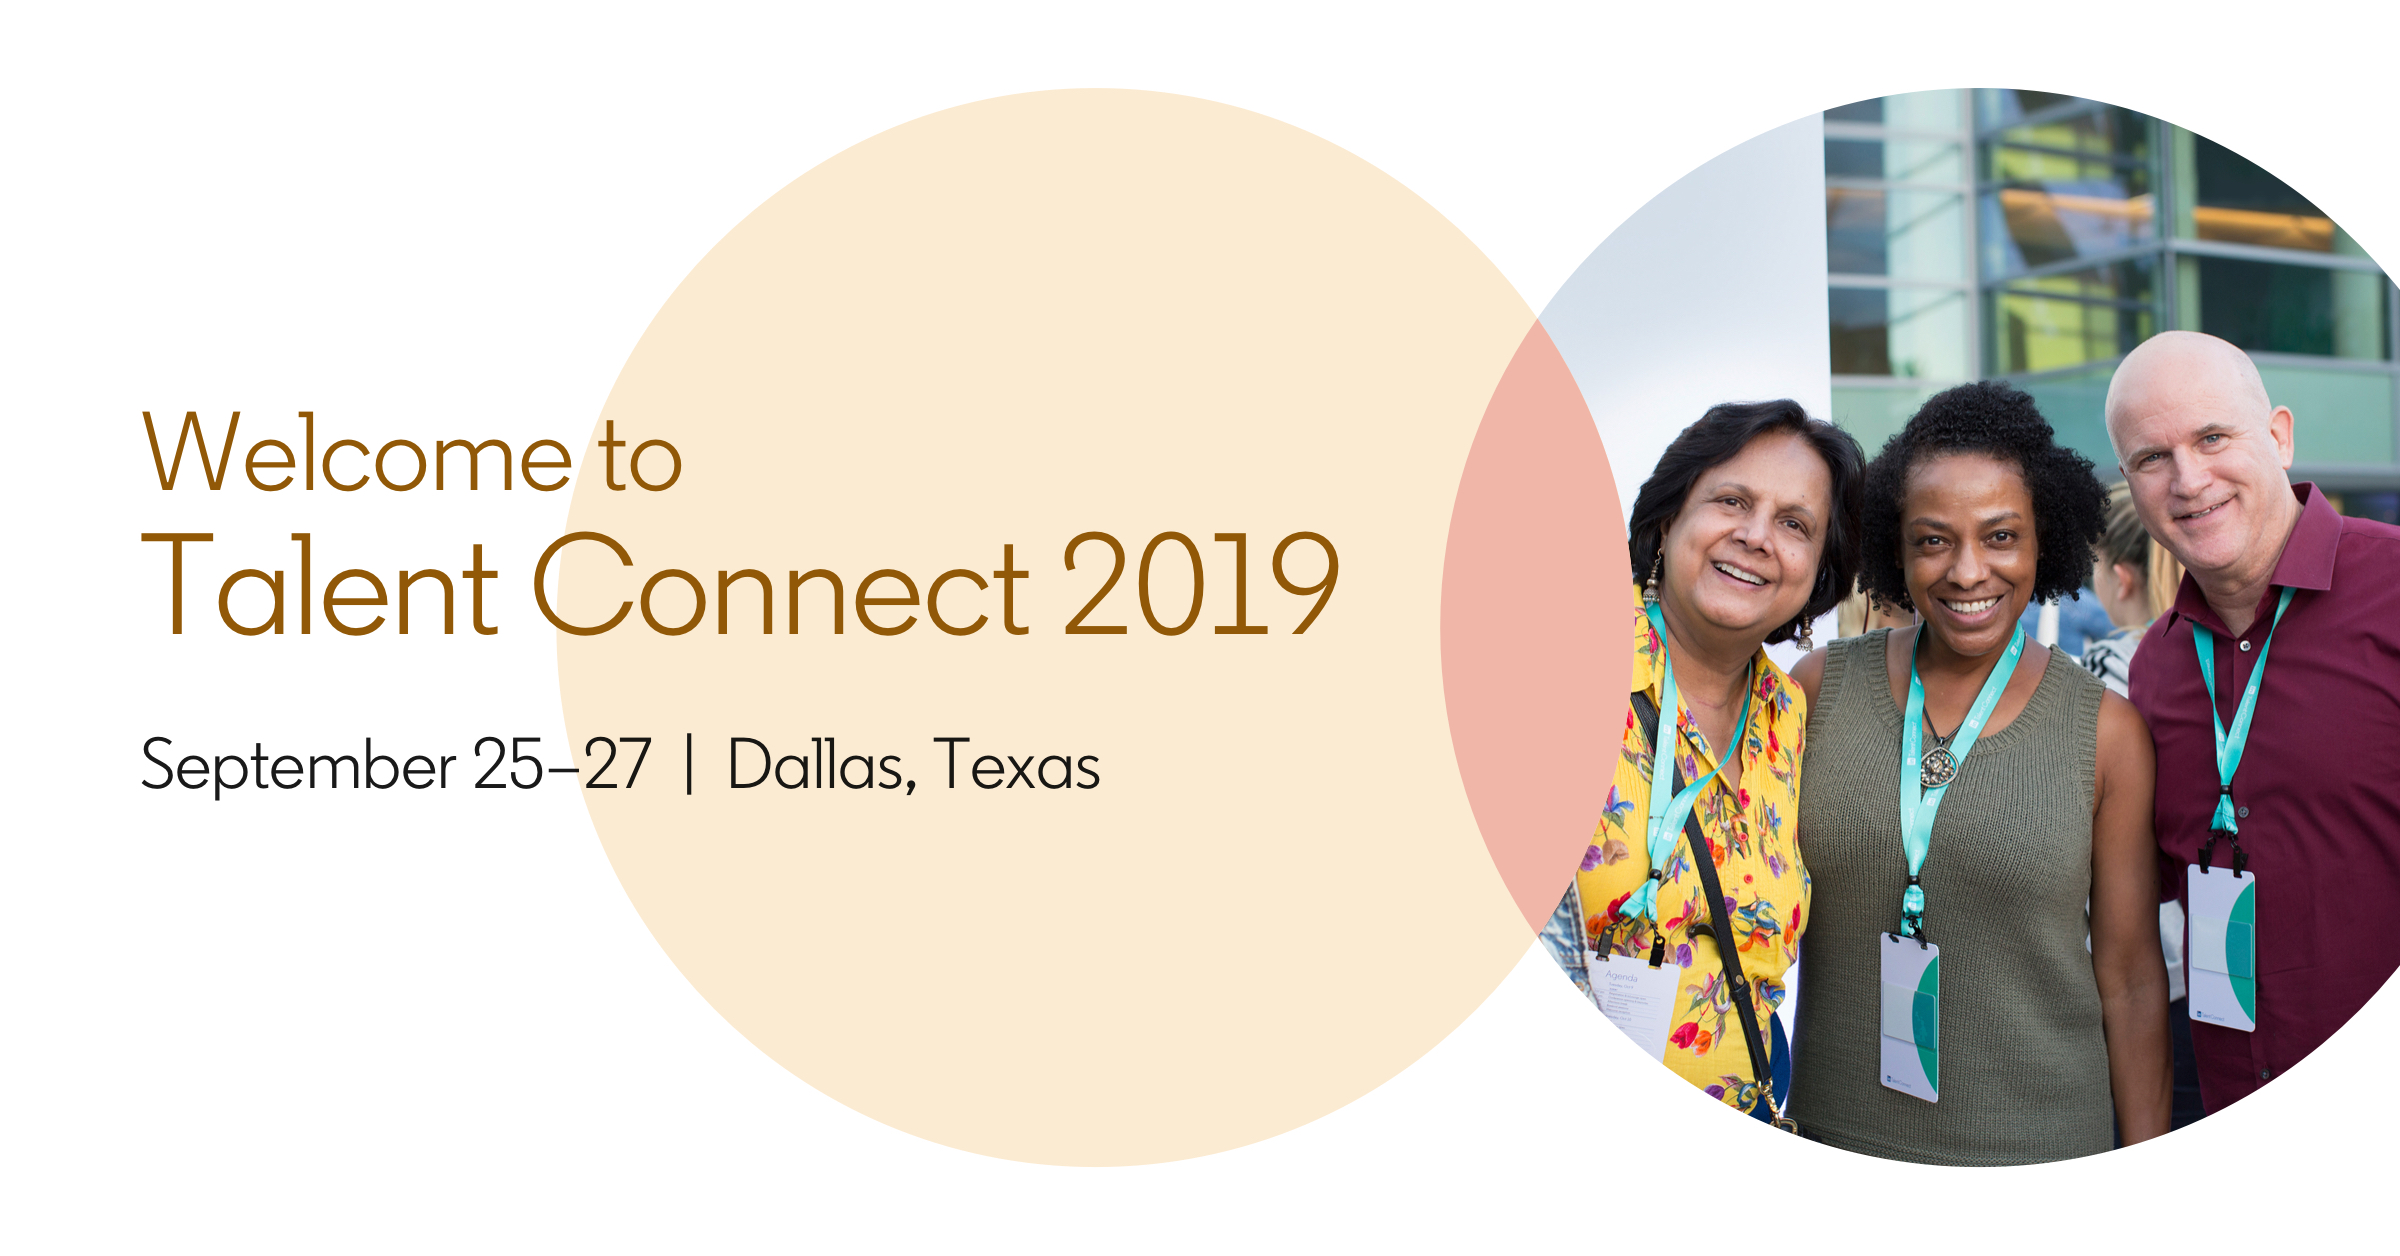 Better Together - Talent Connect 2019